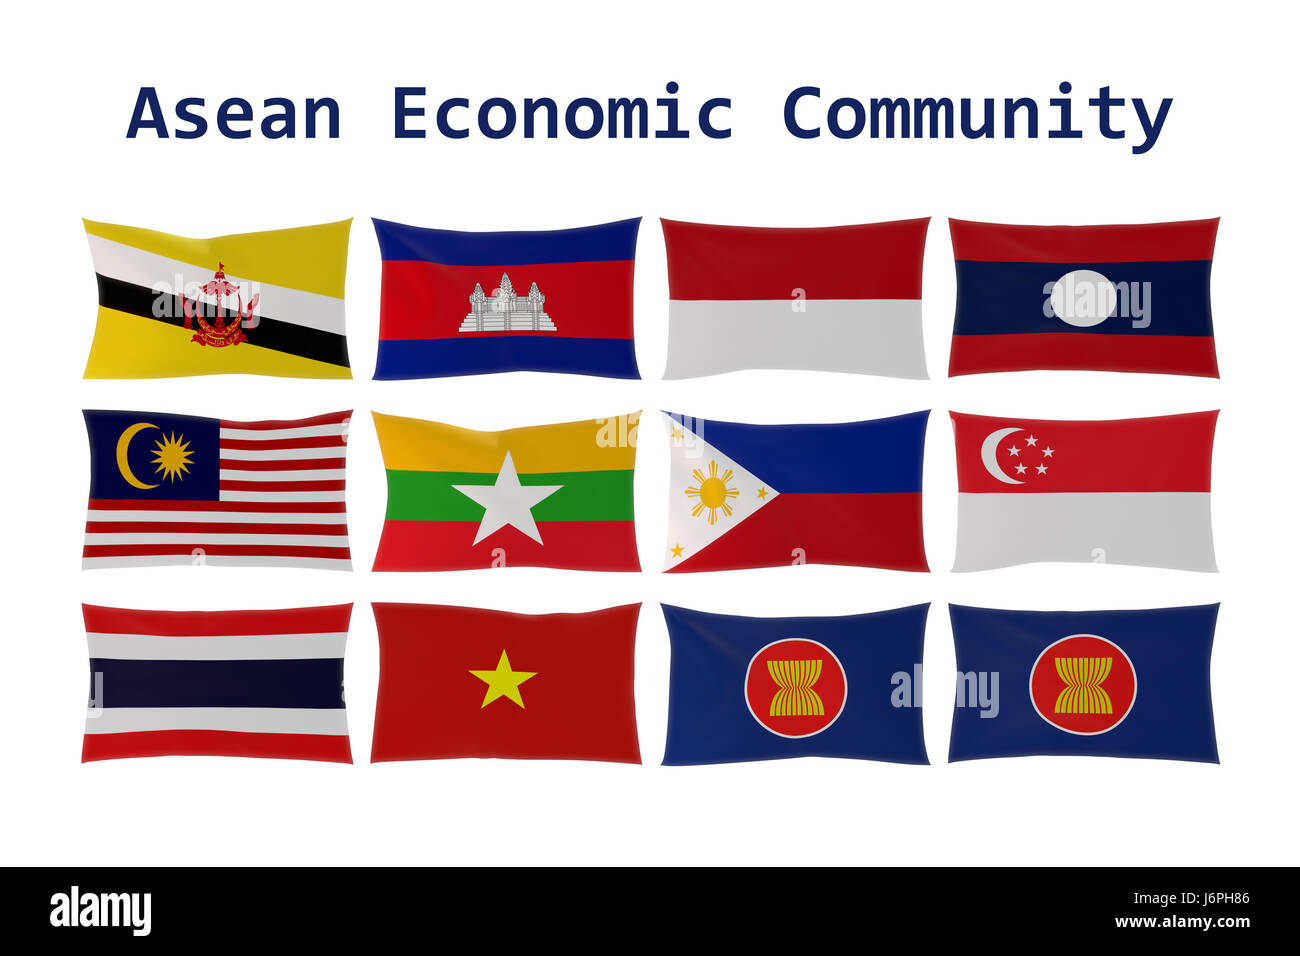 3D rendering of ASEAN country flags (Association of Southeast Asian Nations) and Asean Economic Community (AEC) - Stock Image